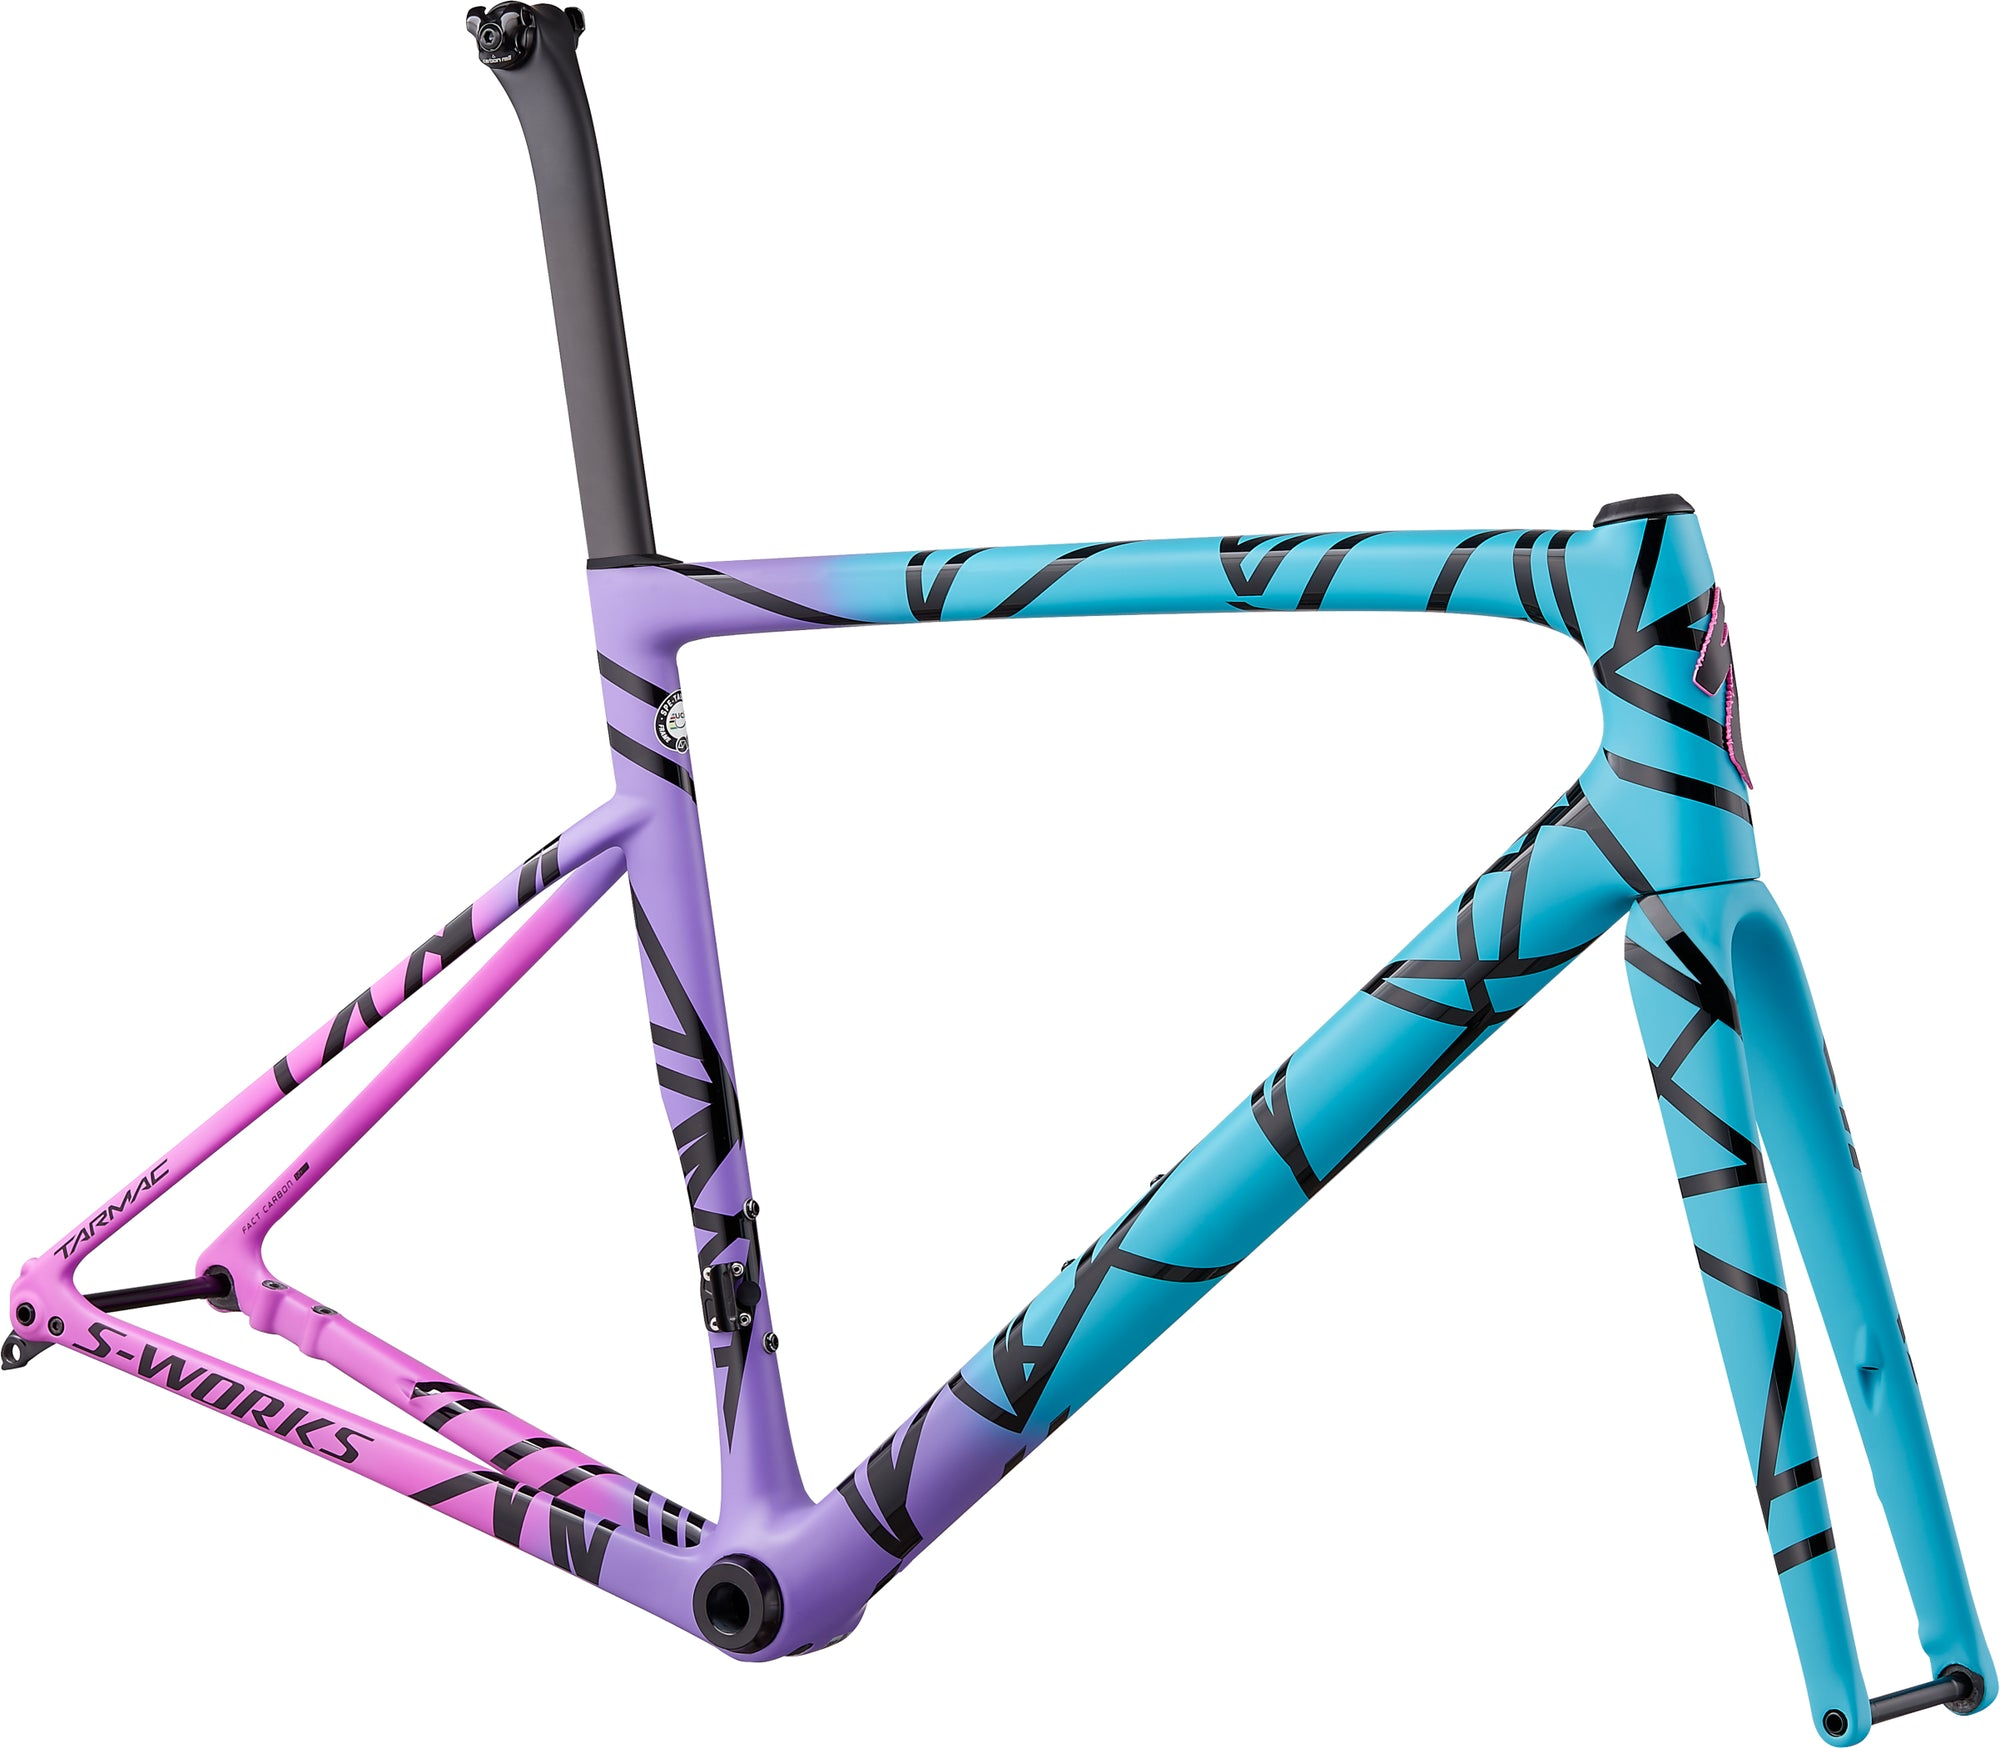 S-Works Tarmac SL6 Disc Frameset - Mixtape LTD